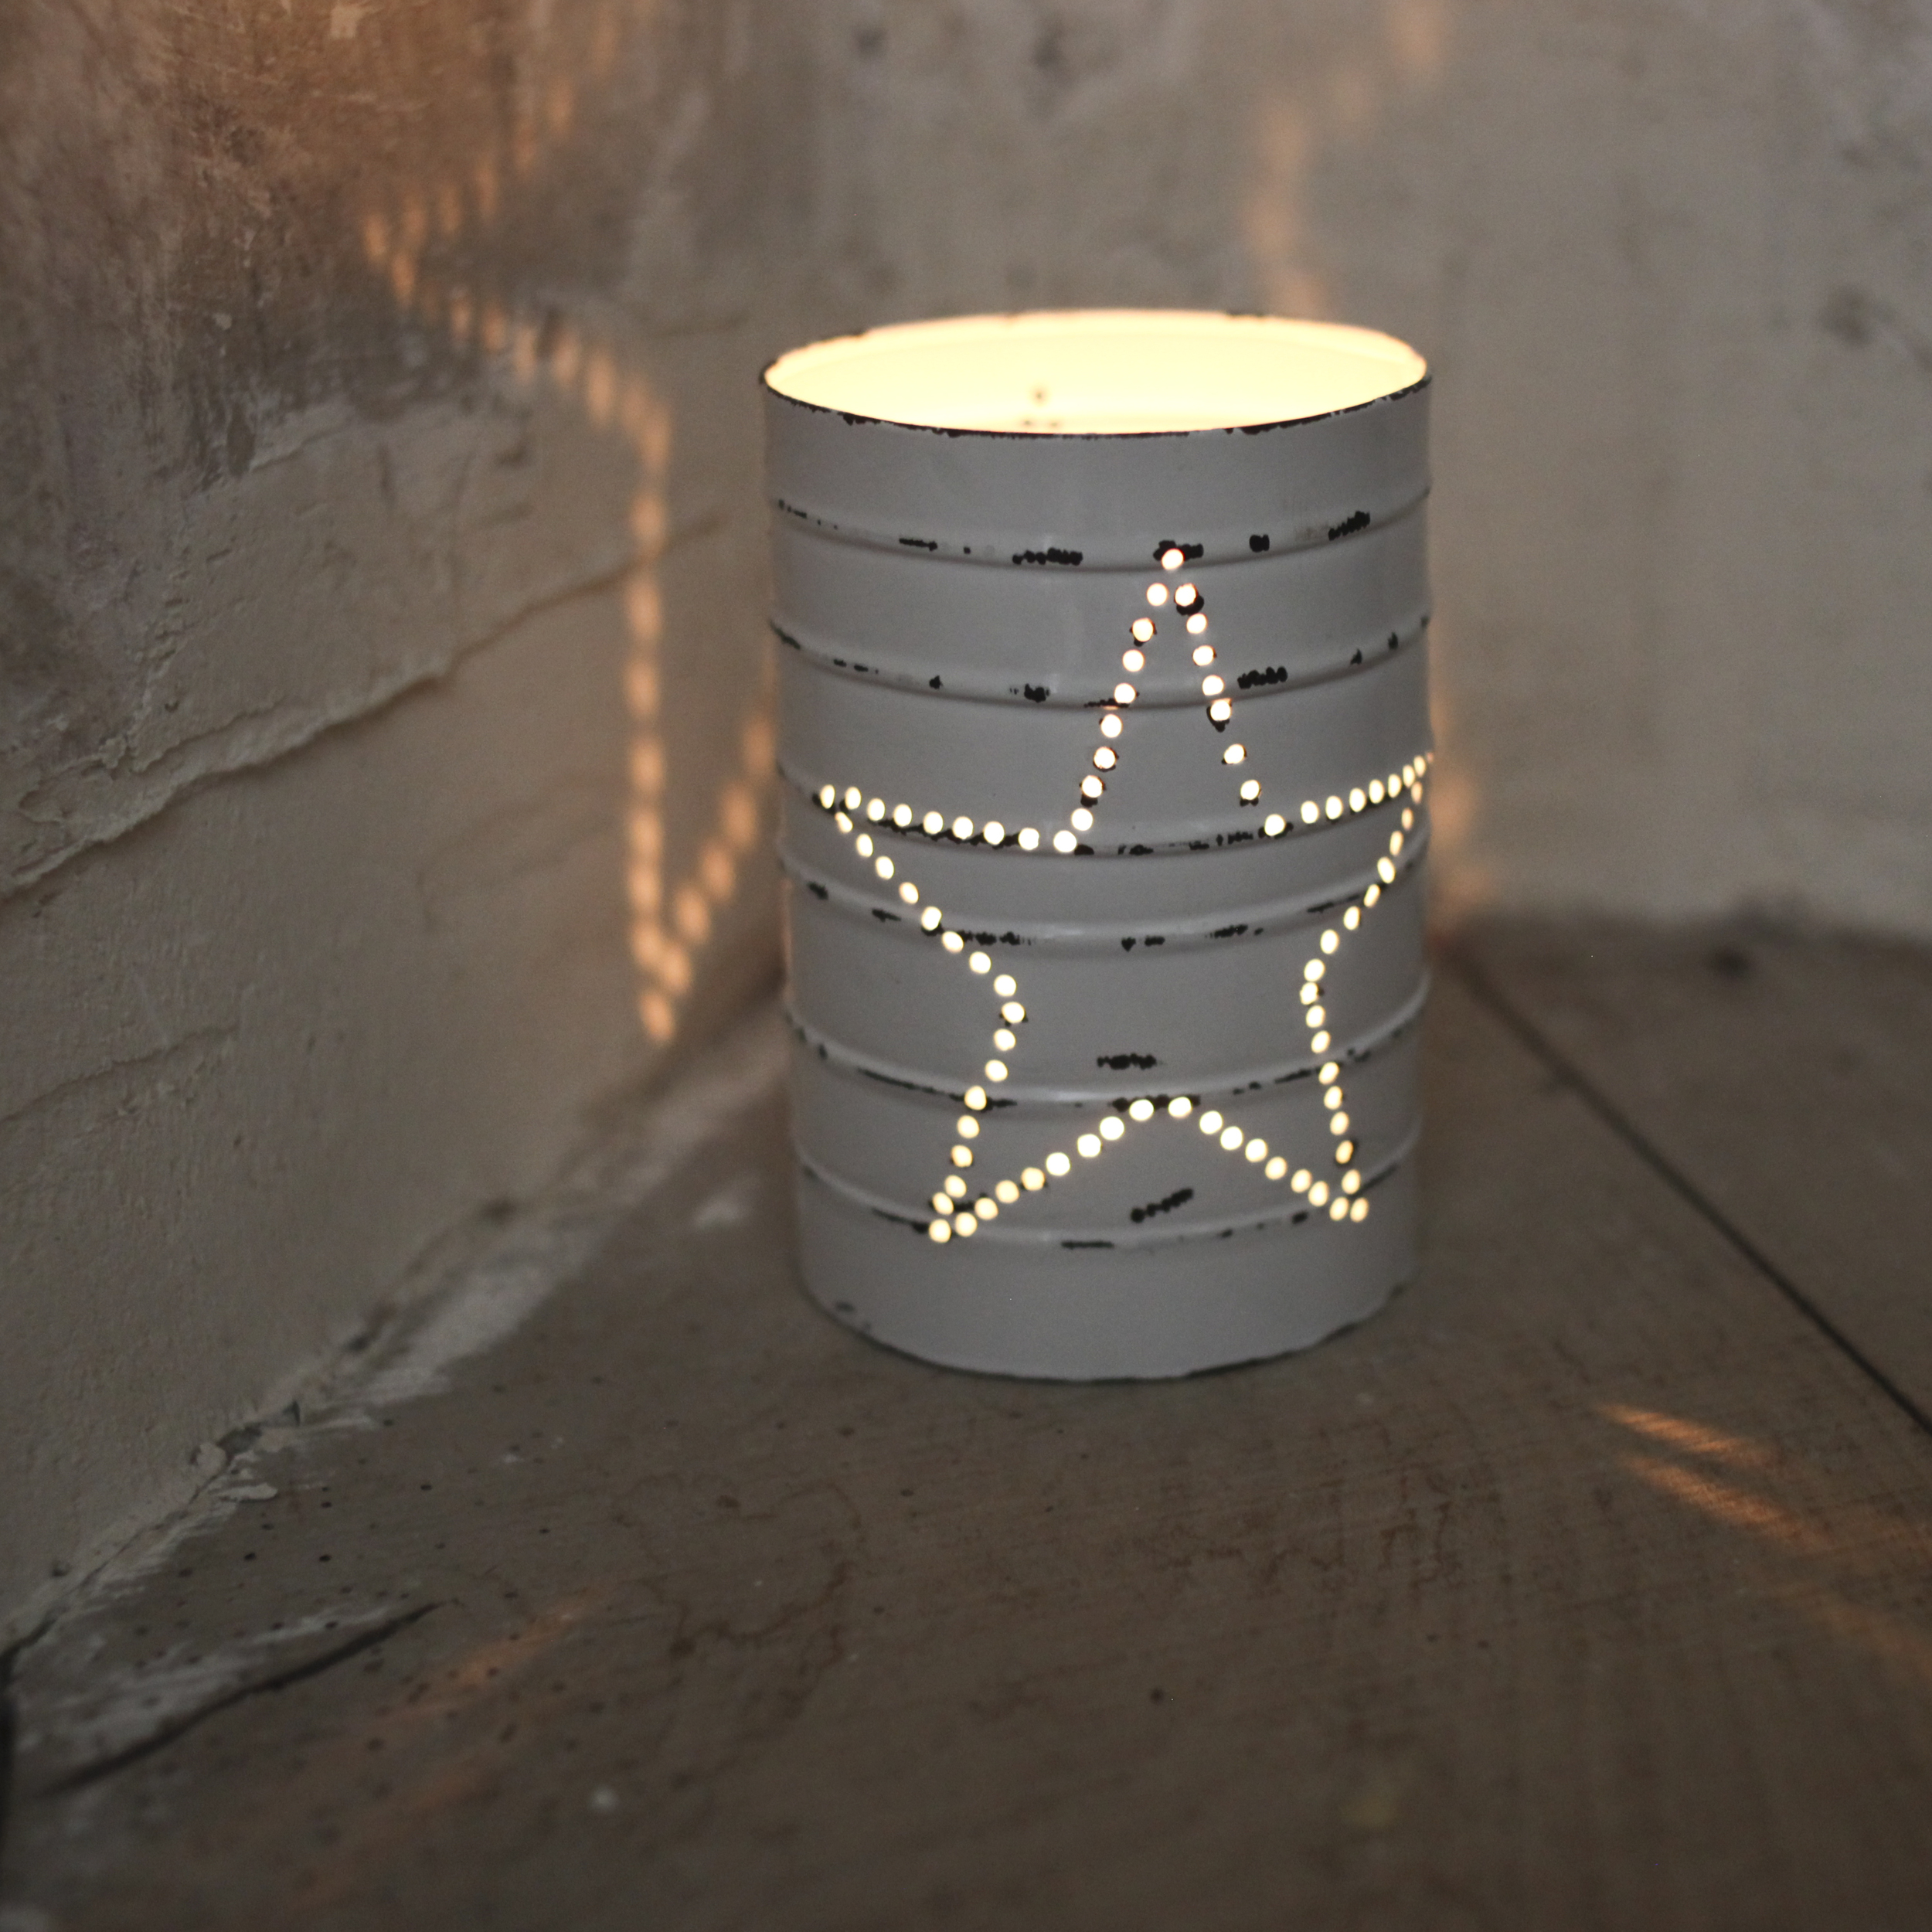 Beautiful Star can lanterns for Christmas decoration and Scandinavian style.  www.alittlebitofnice.com